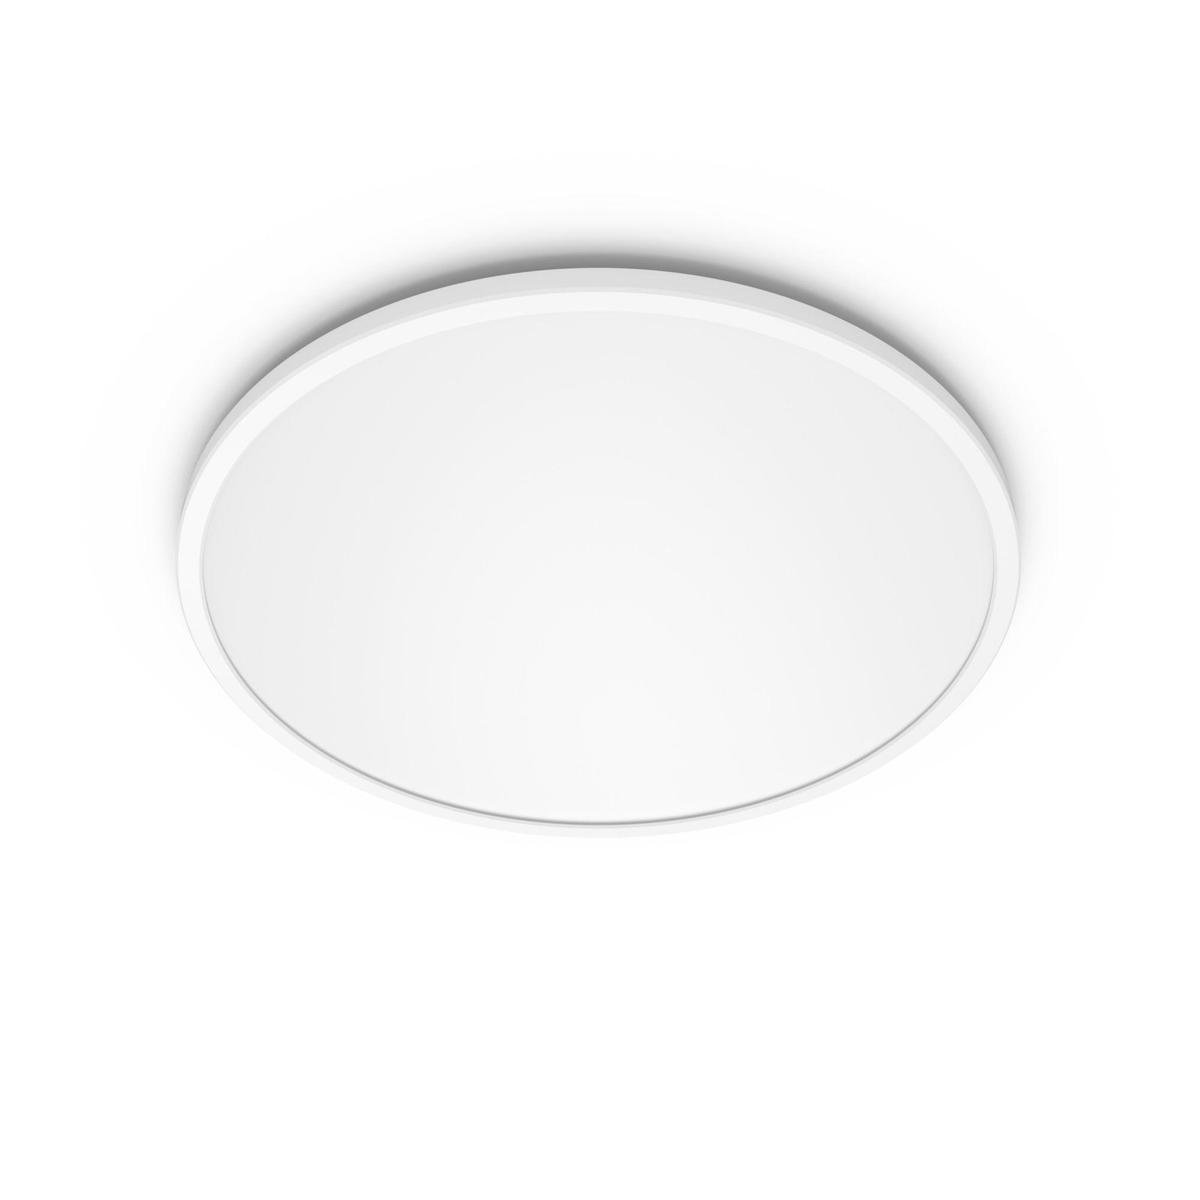 Philips Superslim 27K Plafonniere - LED - 15W - Wit